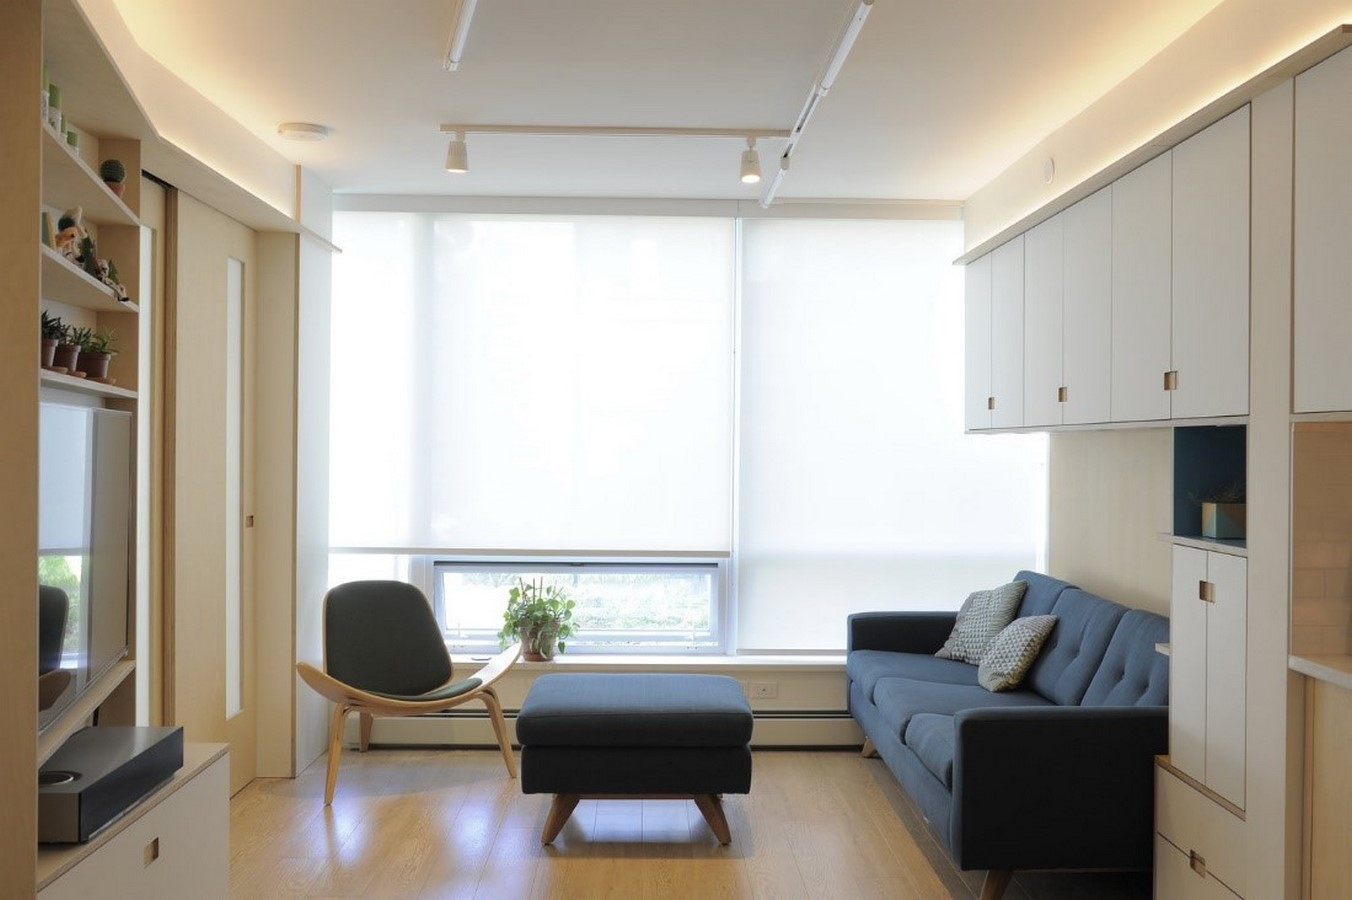 Can luxury fit into a 600sq.ft apartment - Sheet4